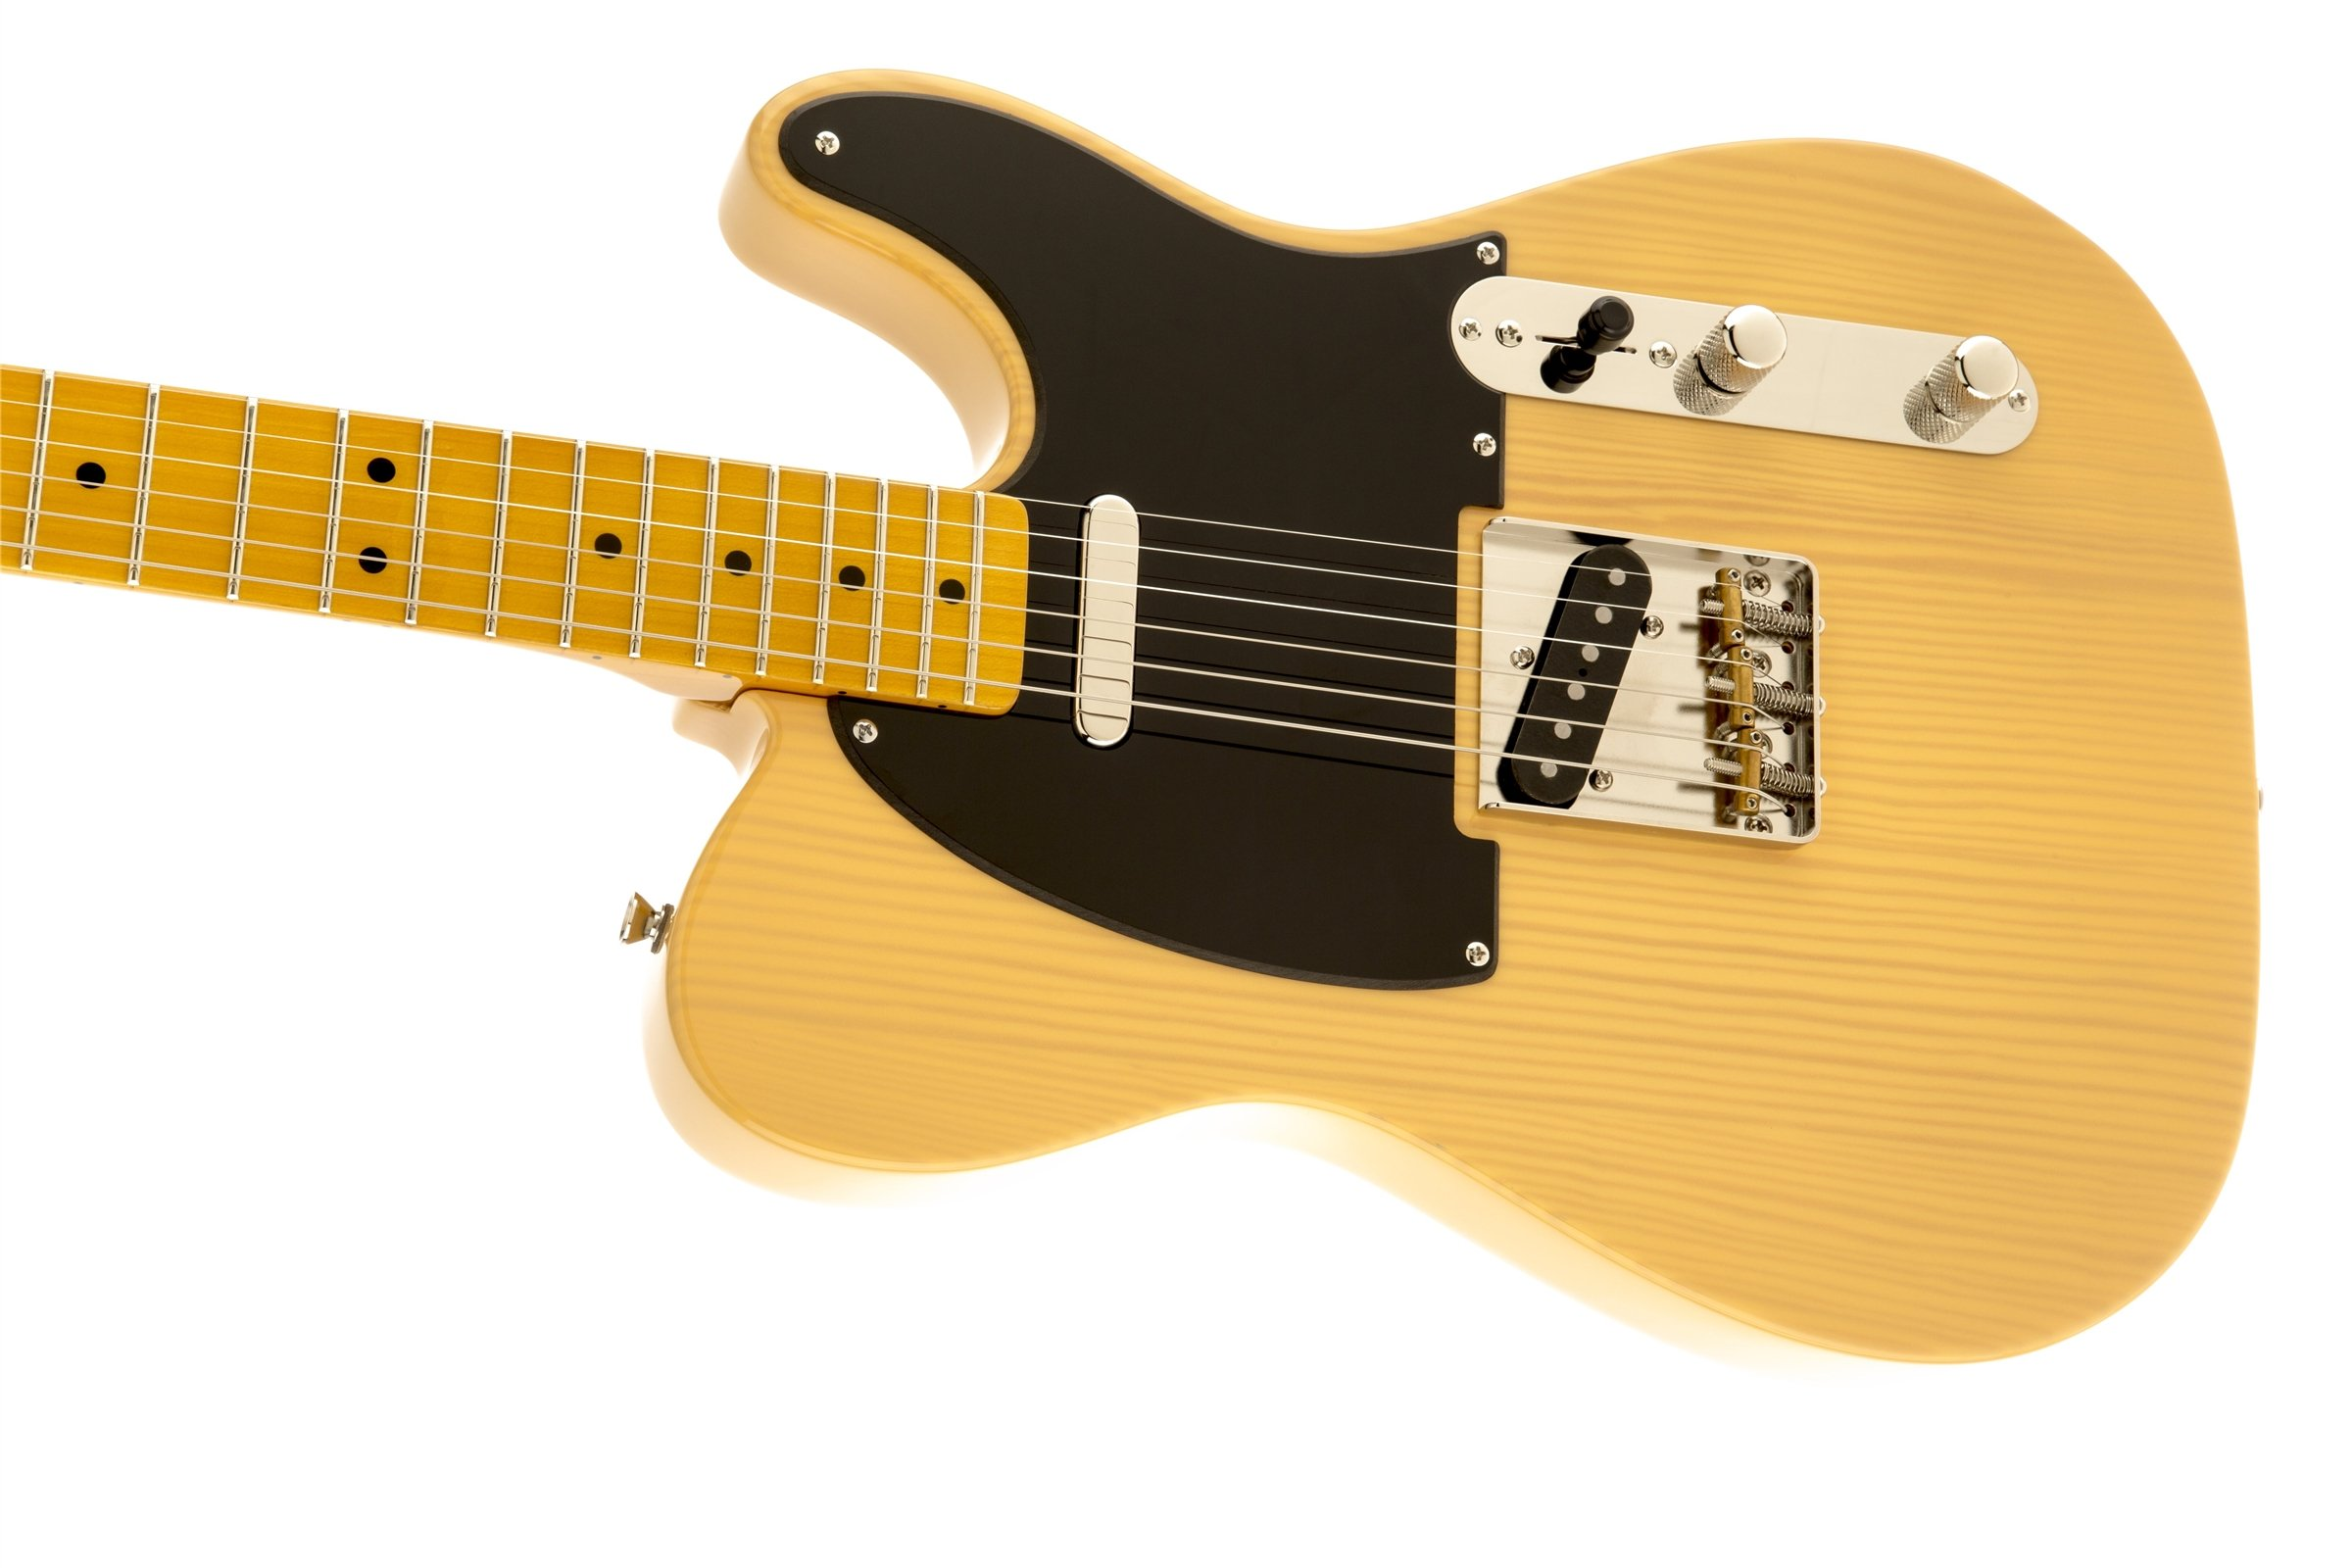 Squier by Fender Classic Vibe 50's Hand Telecaster Electric Guitar - Butterscotch Blonde - Maple Fingerboard by Fender (Image #5)